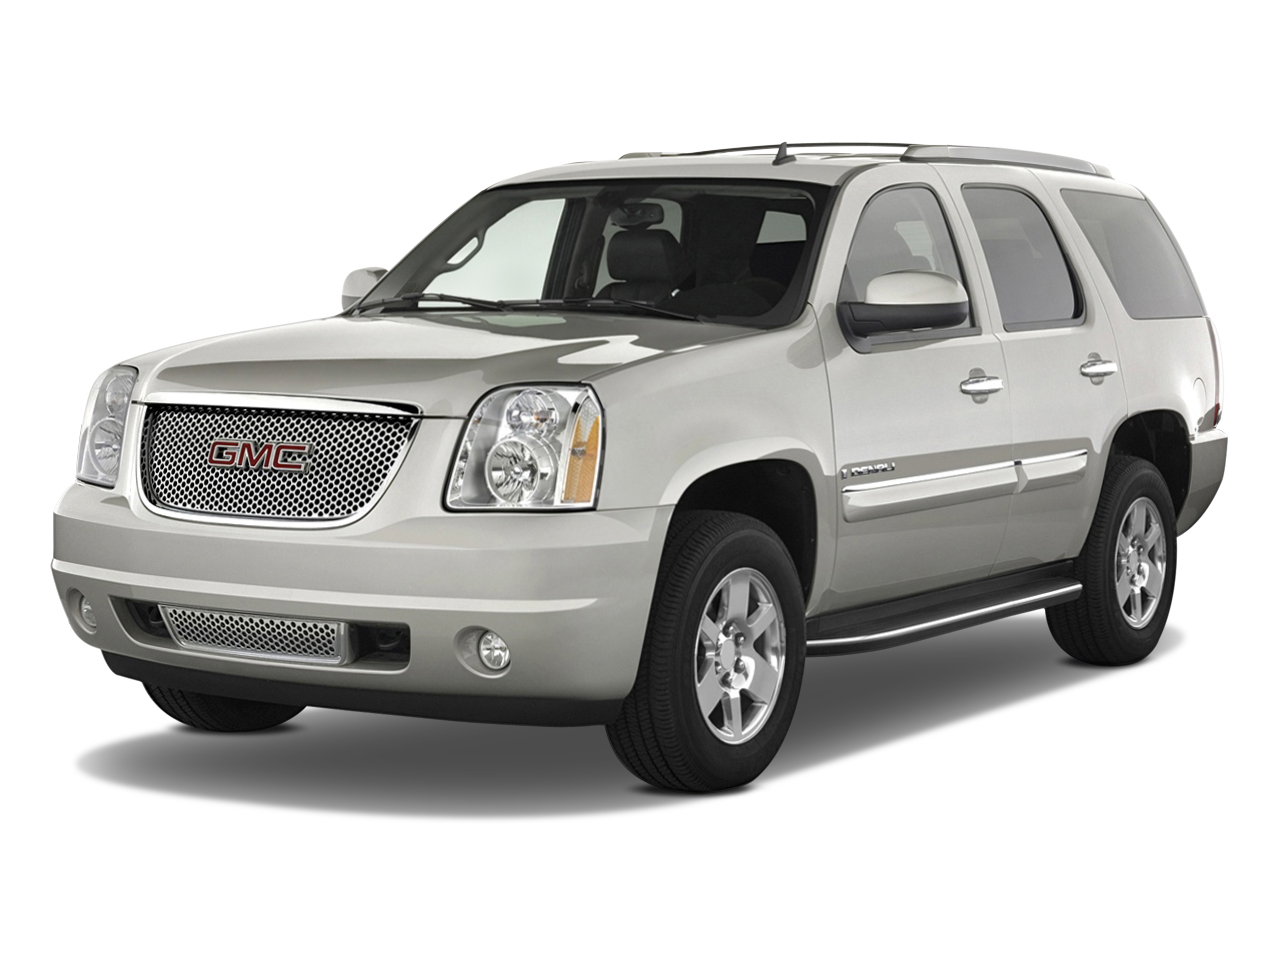 2010 gmc yukon review ratings specs prices and photos the car connection. Black Bedroom Furniture Sets. Home Design Ideas